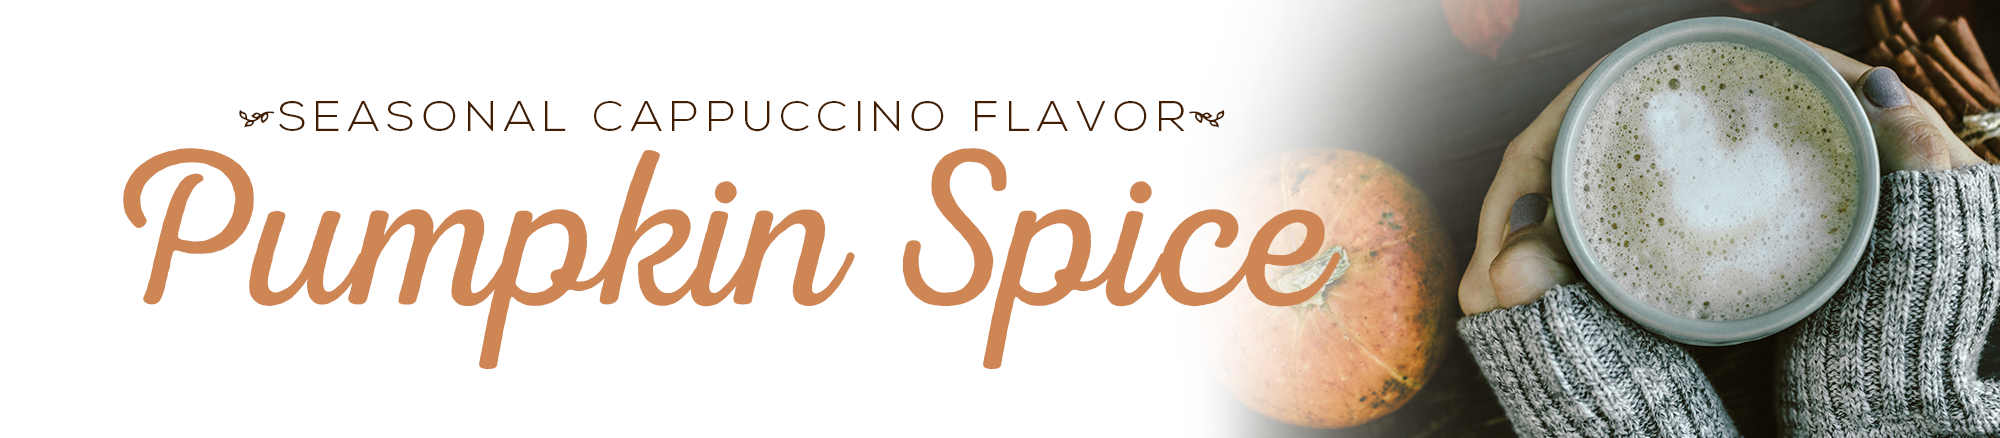 Enjoy our seasonal cappuccino flavors. Only available for a limited time!